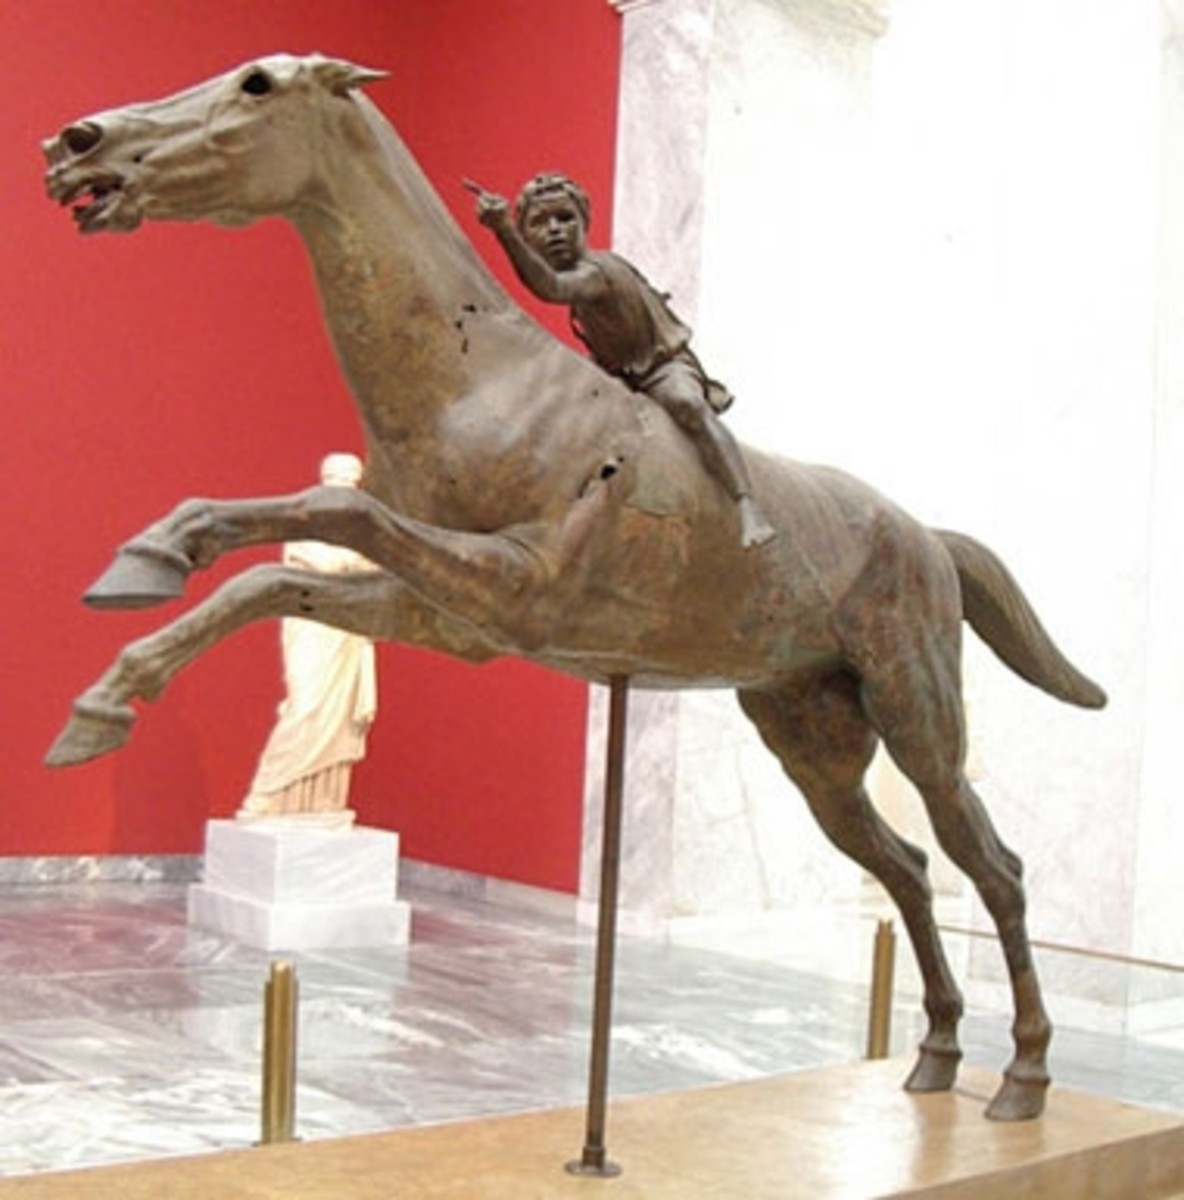 Late Hellenistic bronze statue, c. 140 BCE. The dynamic pose and the strain depicted in both figures is typical of Hellenistic art, which shifted from ideal and austere to gritty realism and the (melo)dramatic.